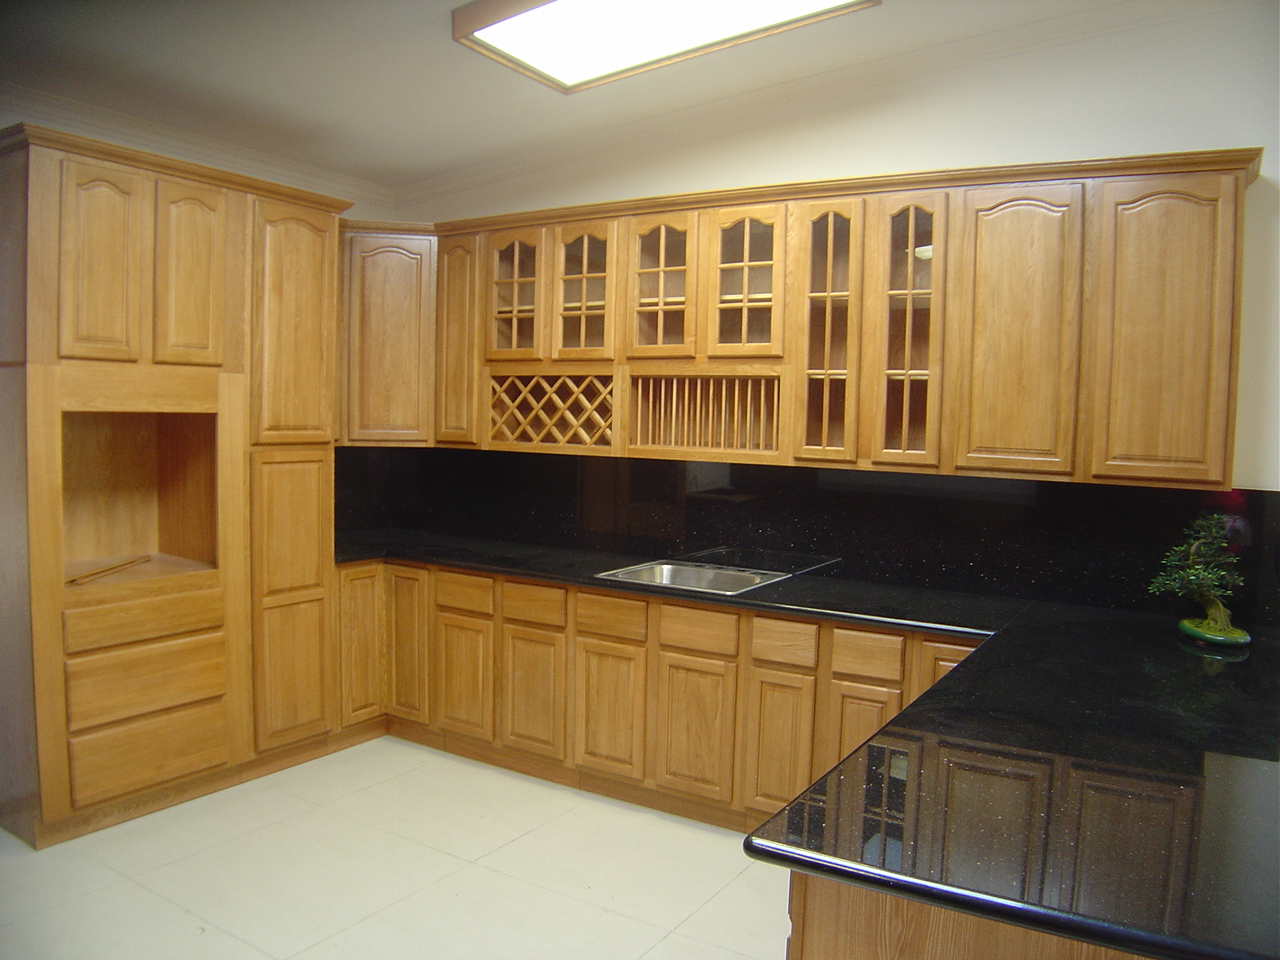 Oak kitchen cabinets for your interior kitchen minimalist for Kitchen interior designs